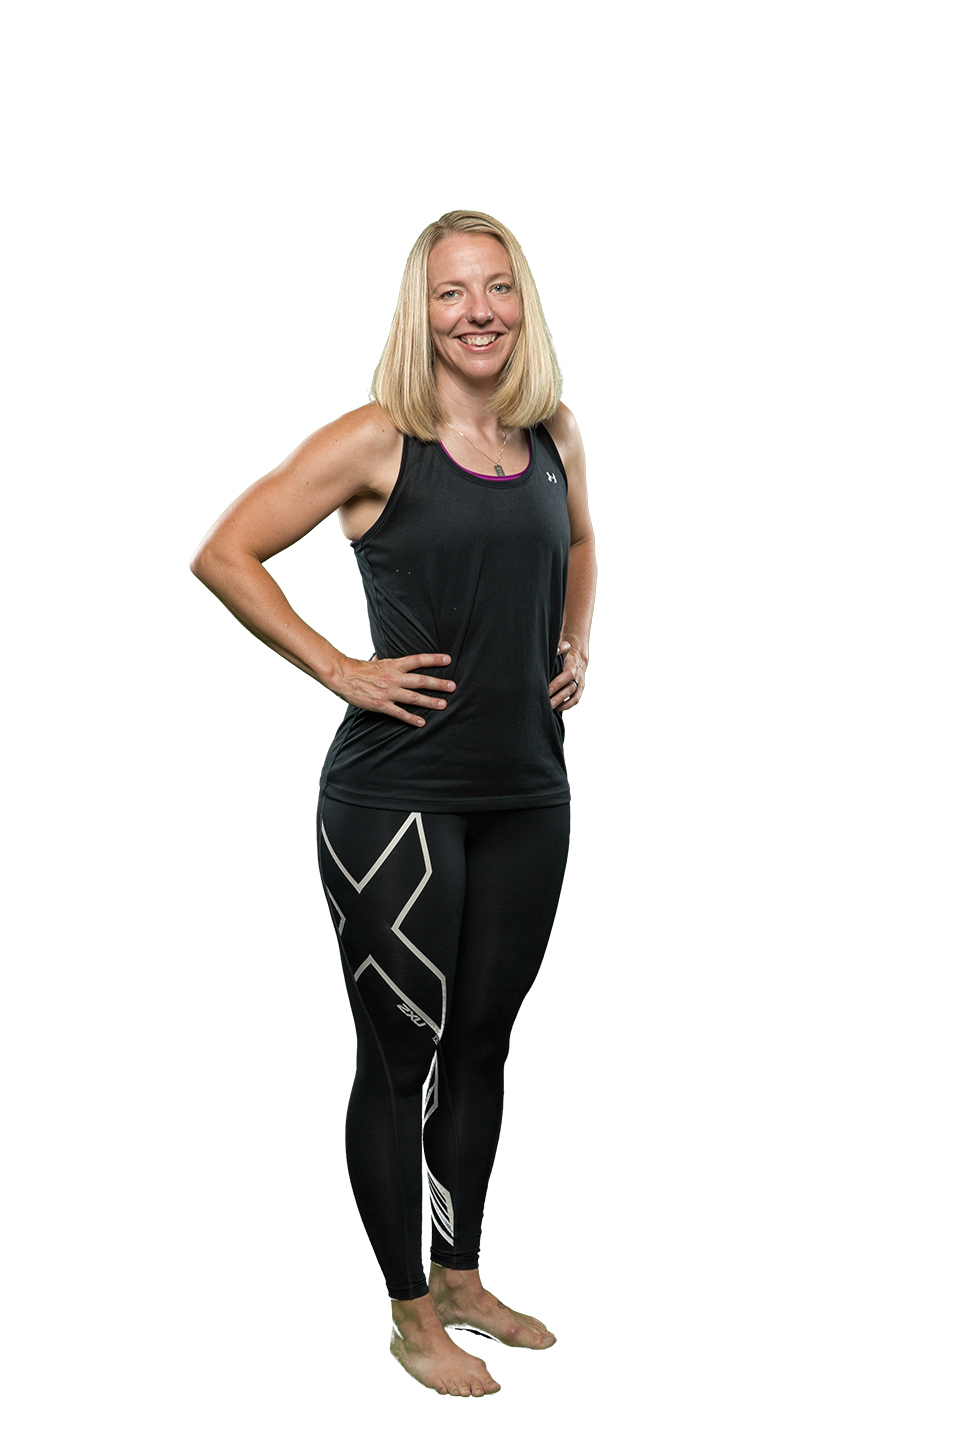 April - Sprint, RPM, BodyCombat and BodyAttack Instructor. Member of OCR team.